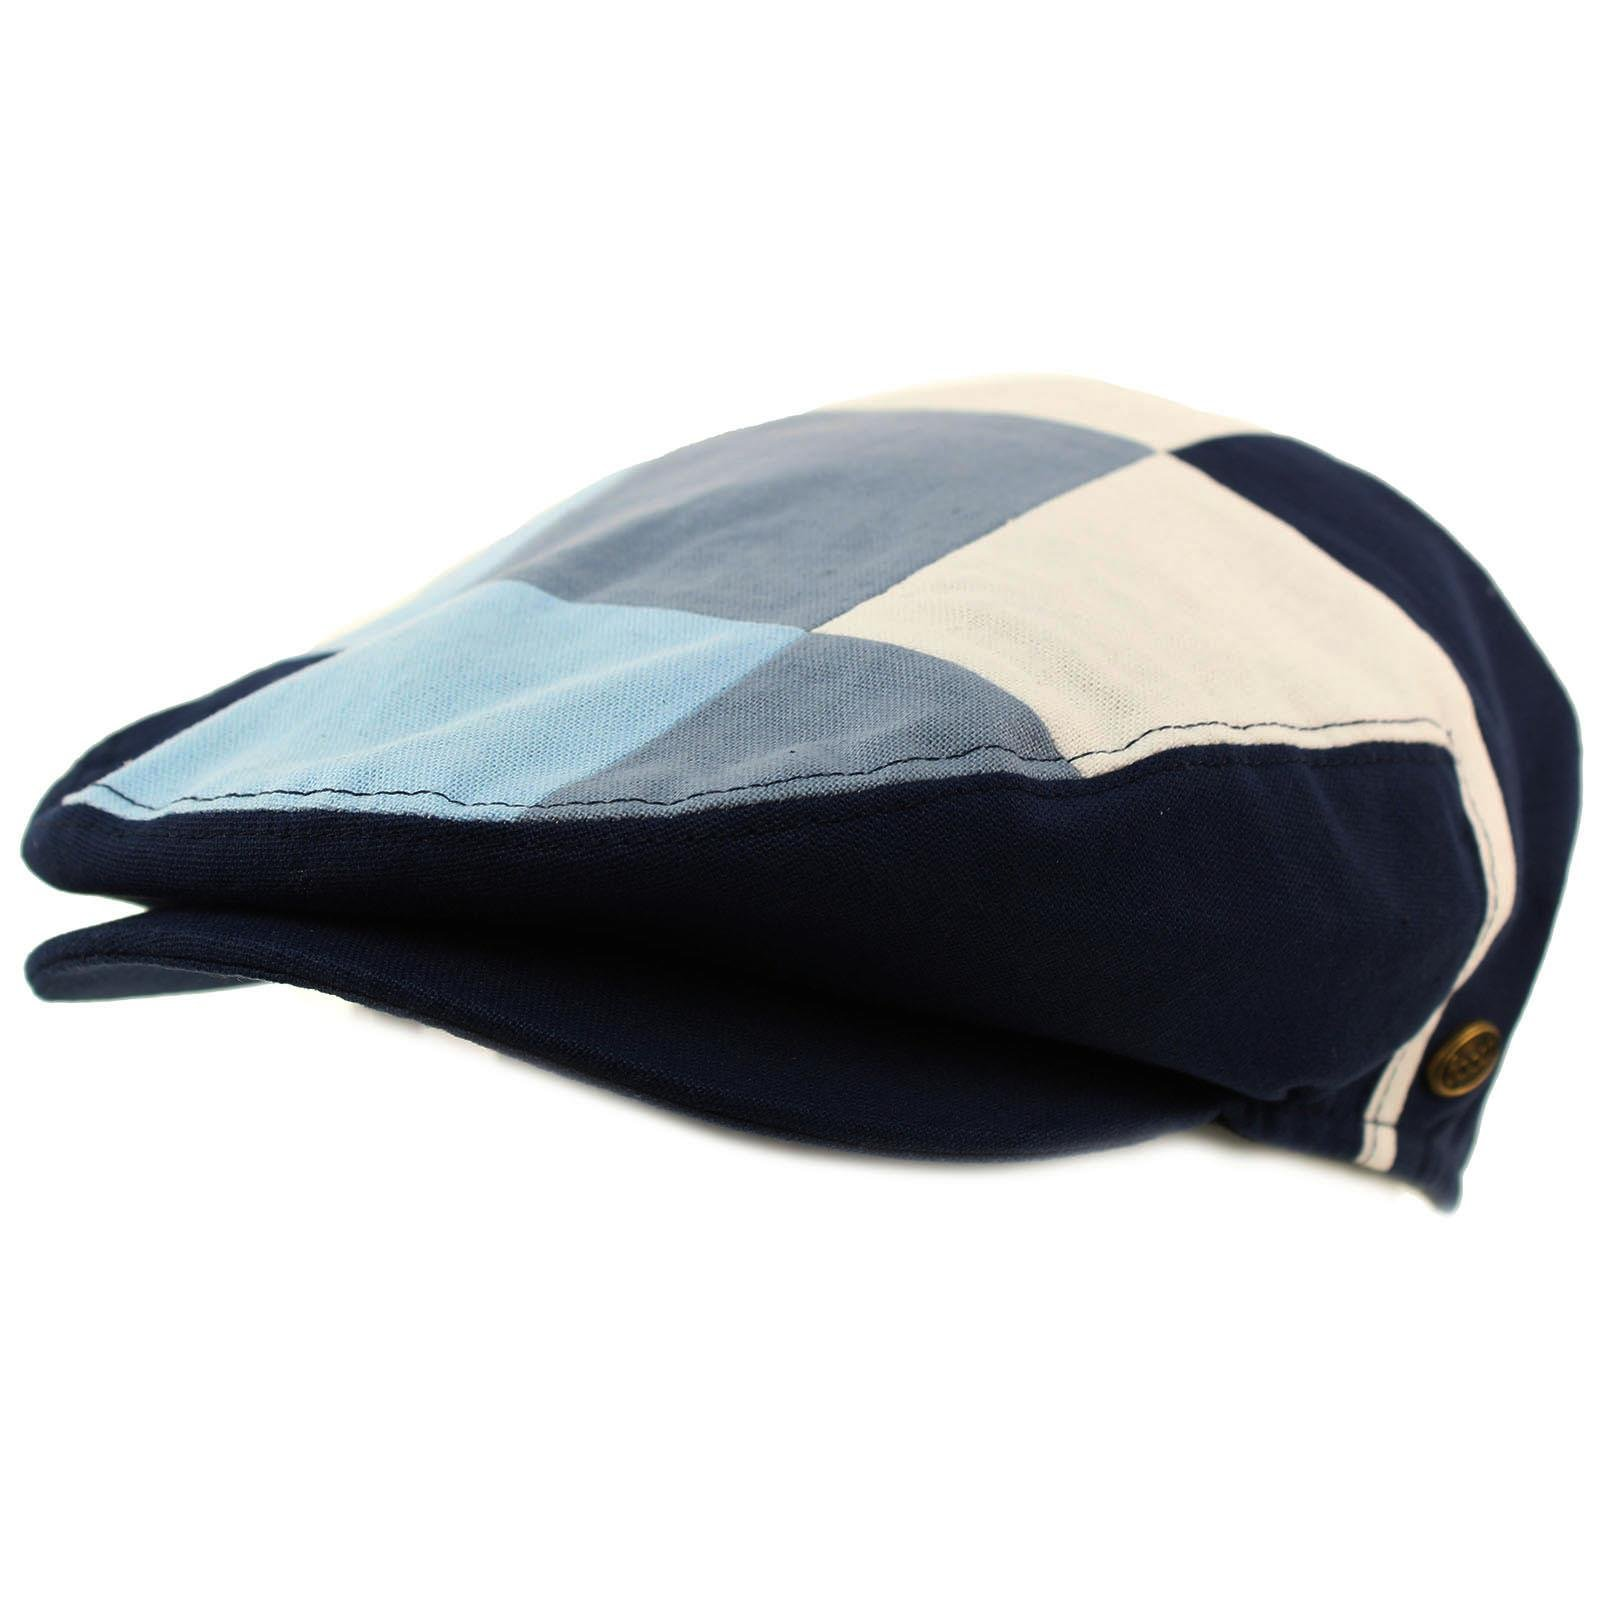 SK Hat shop Men's Cotton 14 Panel IVY Checkerboard Plaid Driver Cabby Flat Cap Hat Large Navy